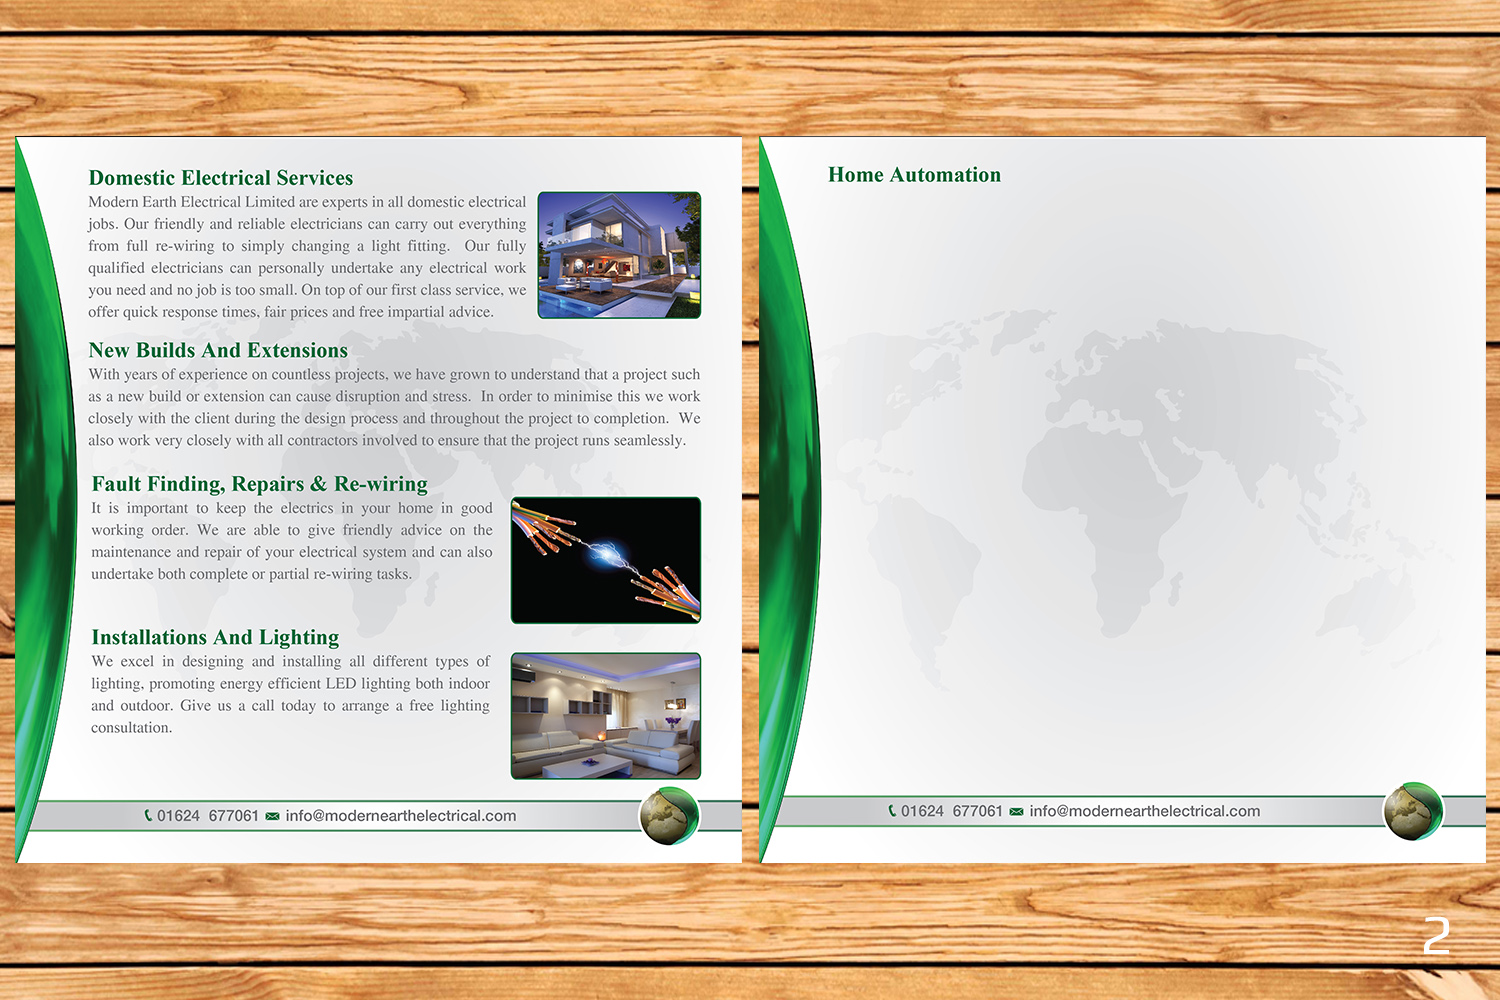 Elegant Modern Electrical Brochure Design For A Company By And Home Automation Wiring Designanddevelopment This Project 12727146